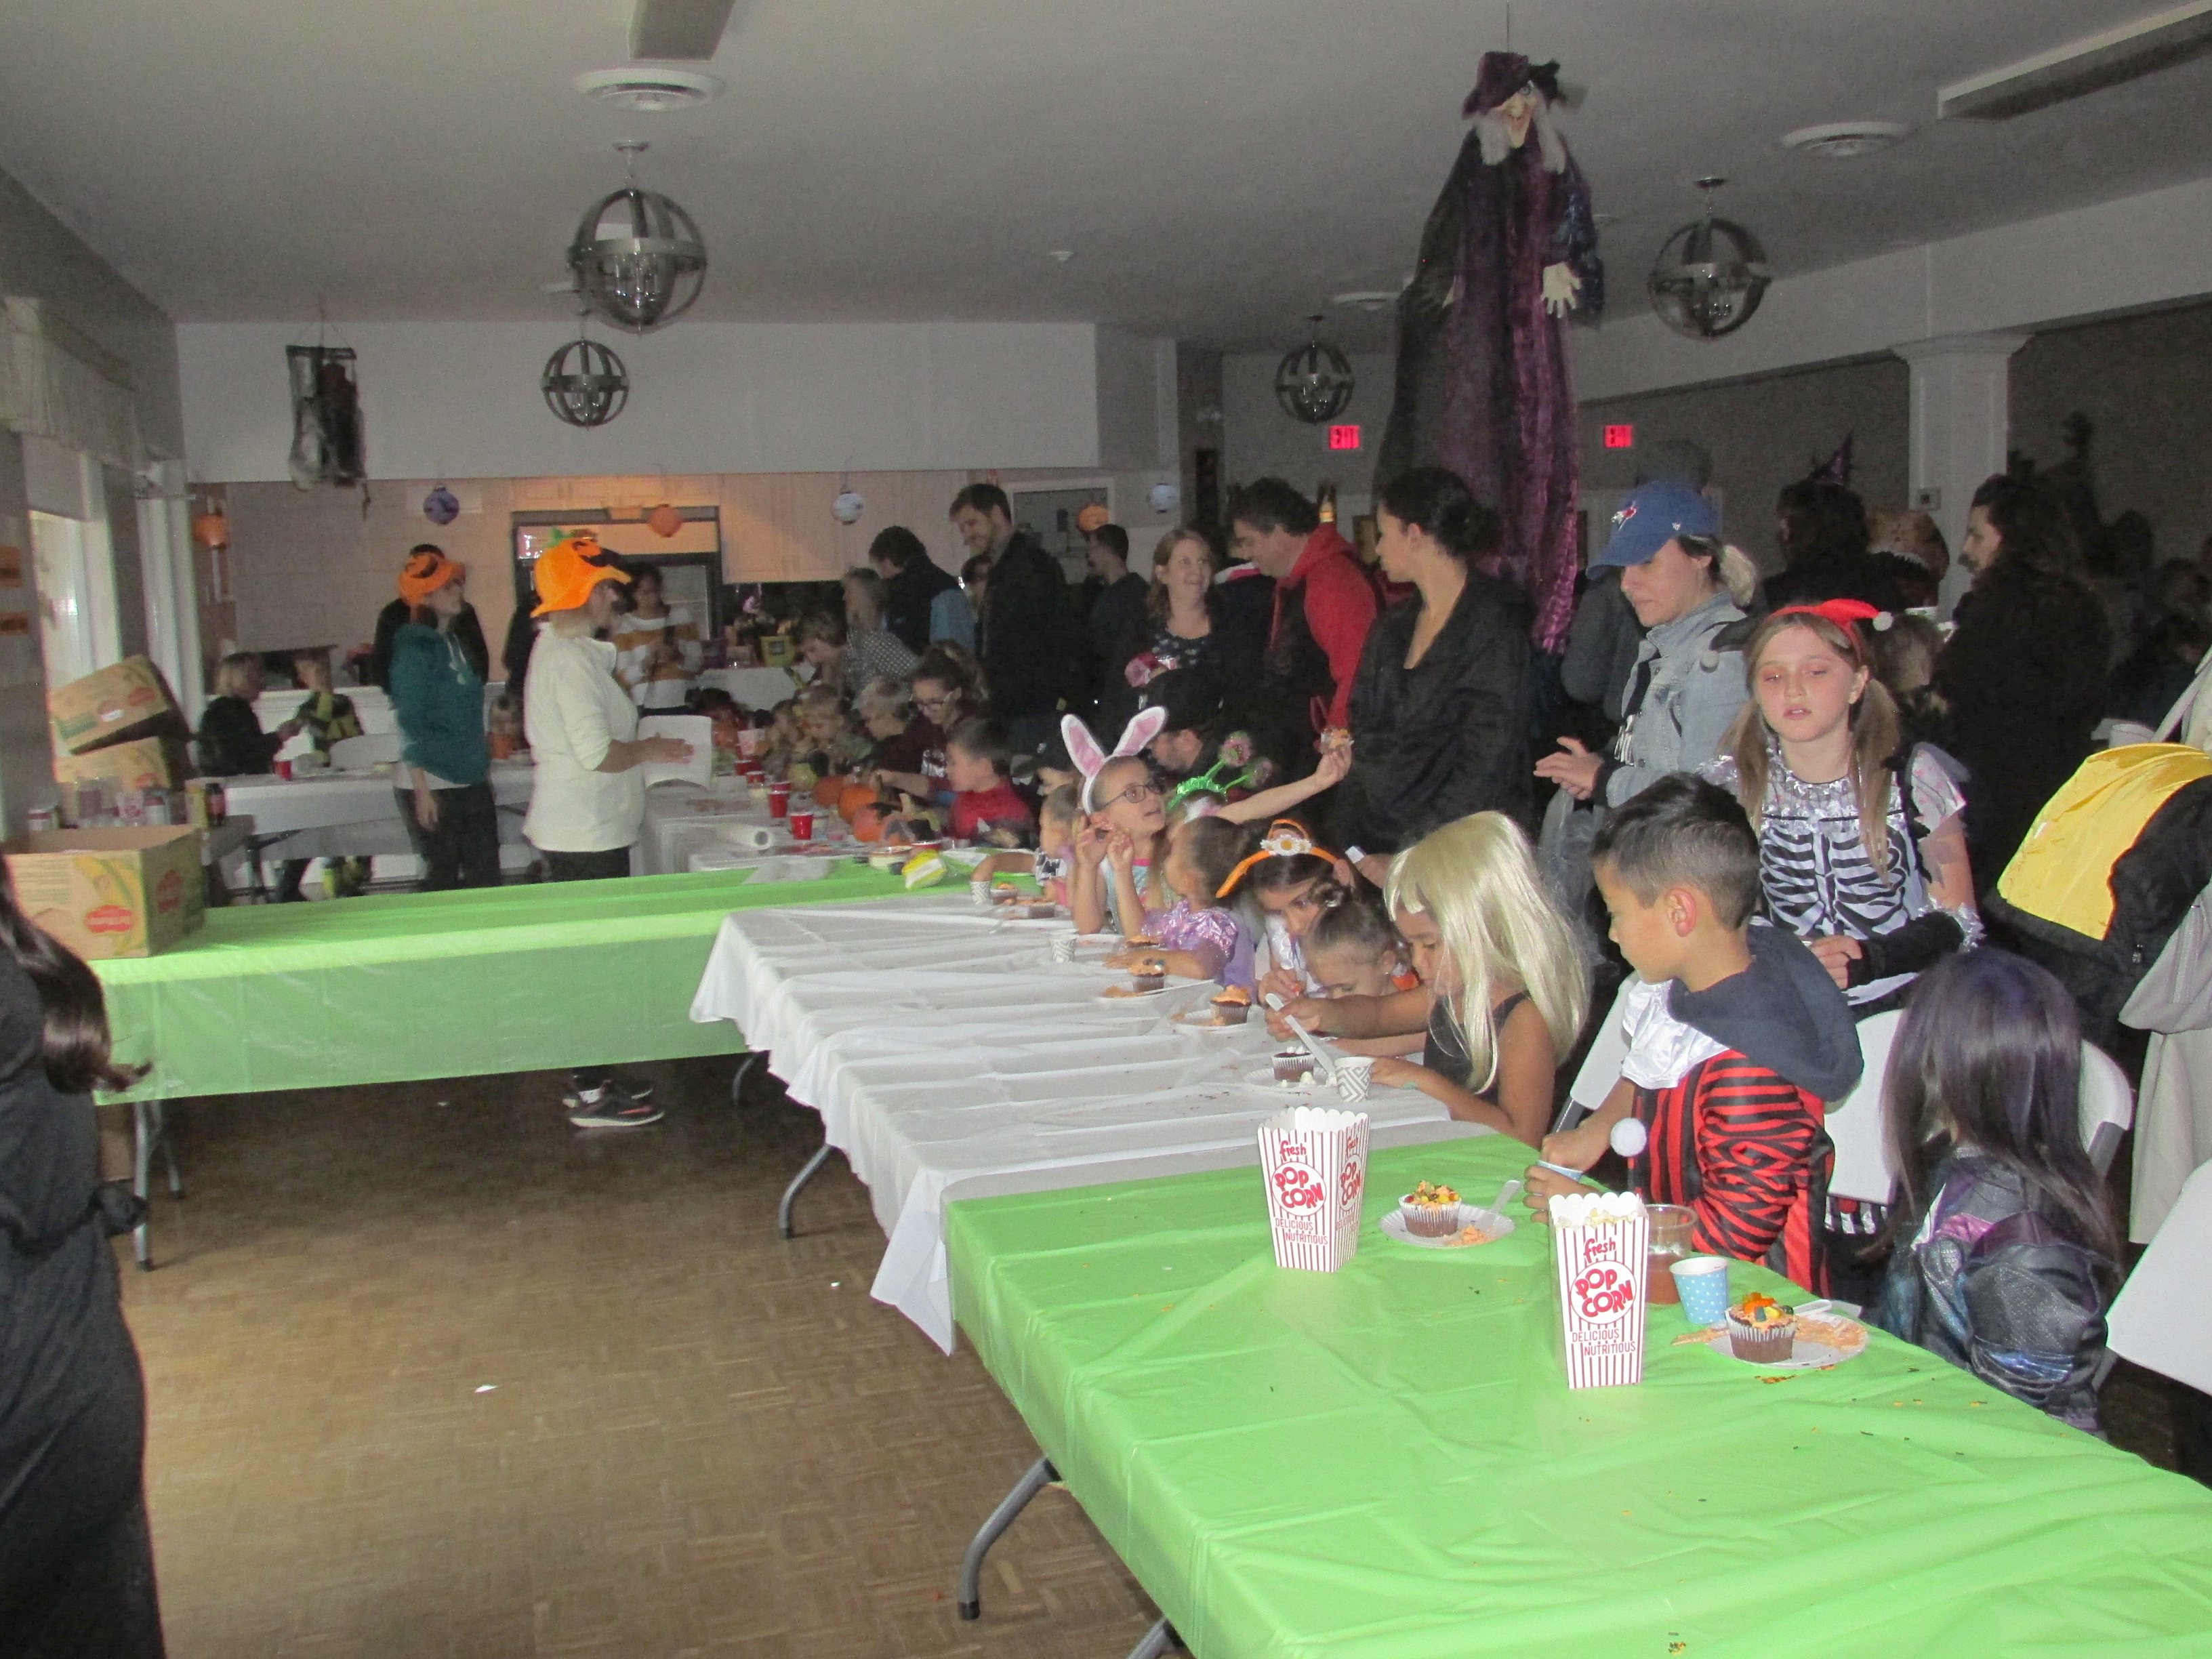 Children in Halloween costumes gathered around a table